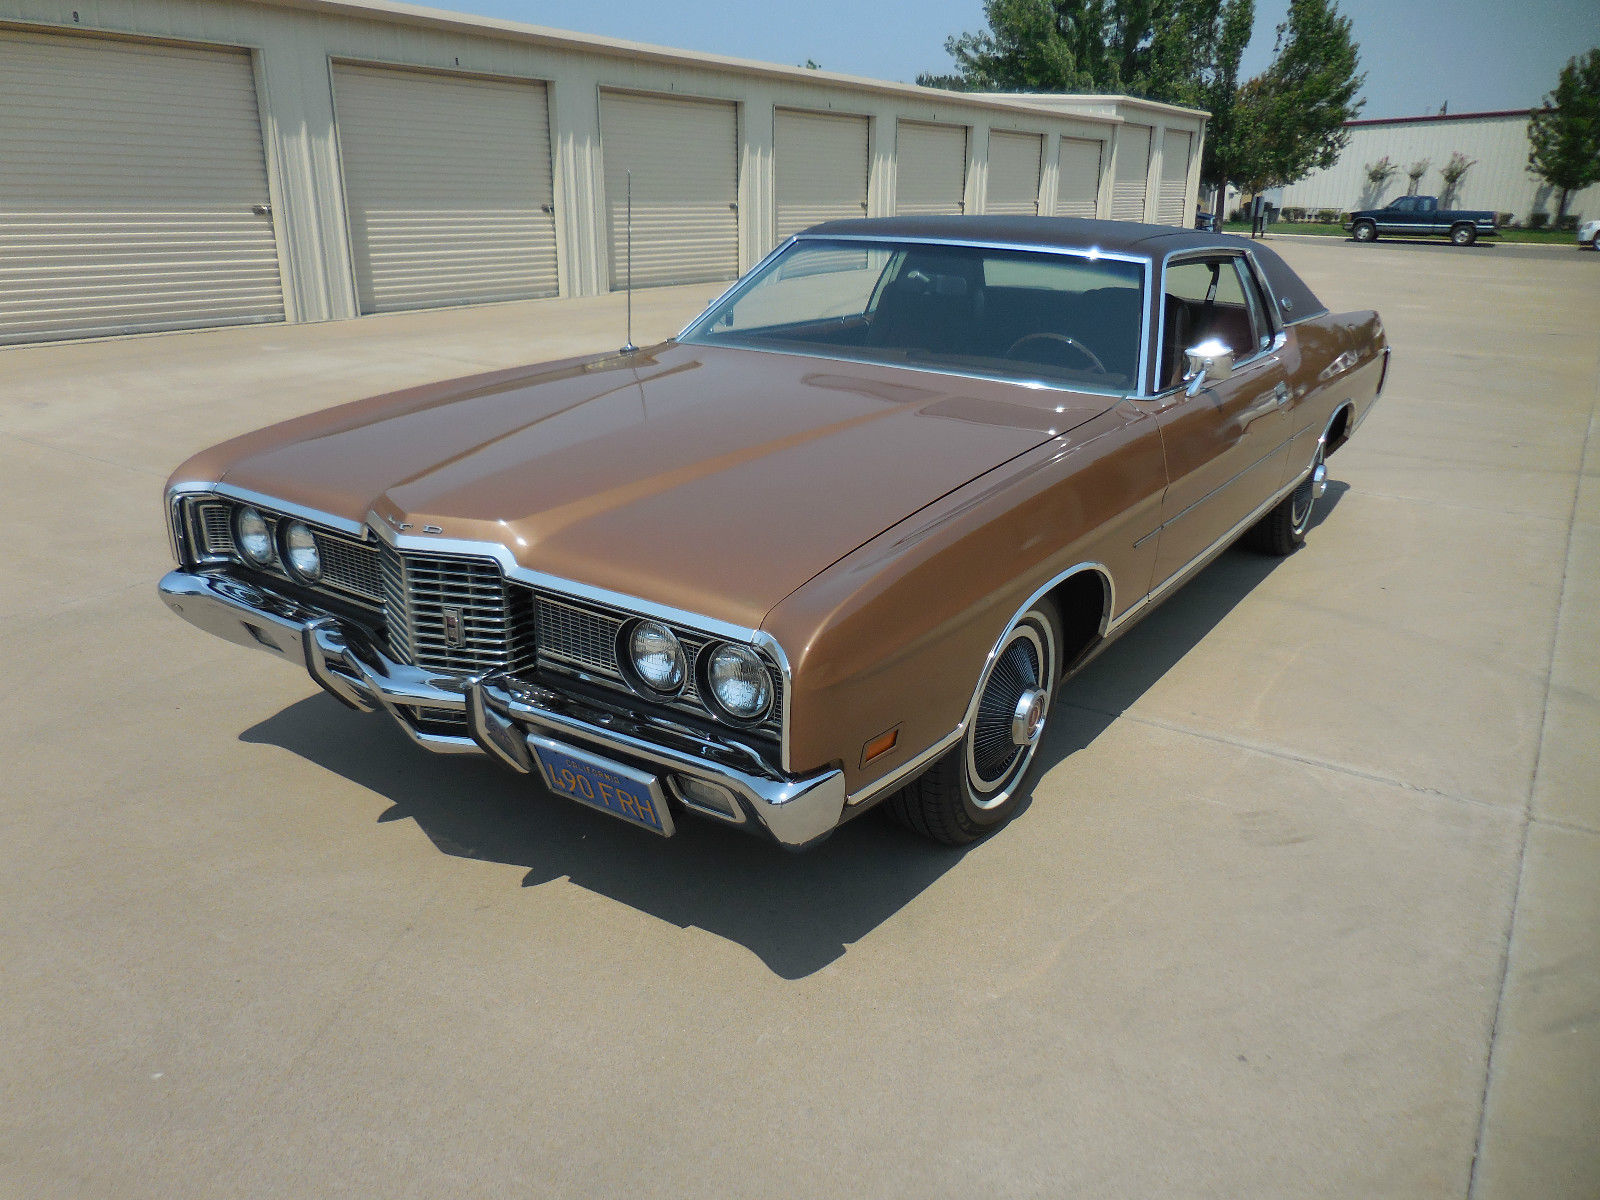 Ebay find this 1972 ford ltd is pure seventies perfection